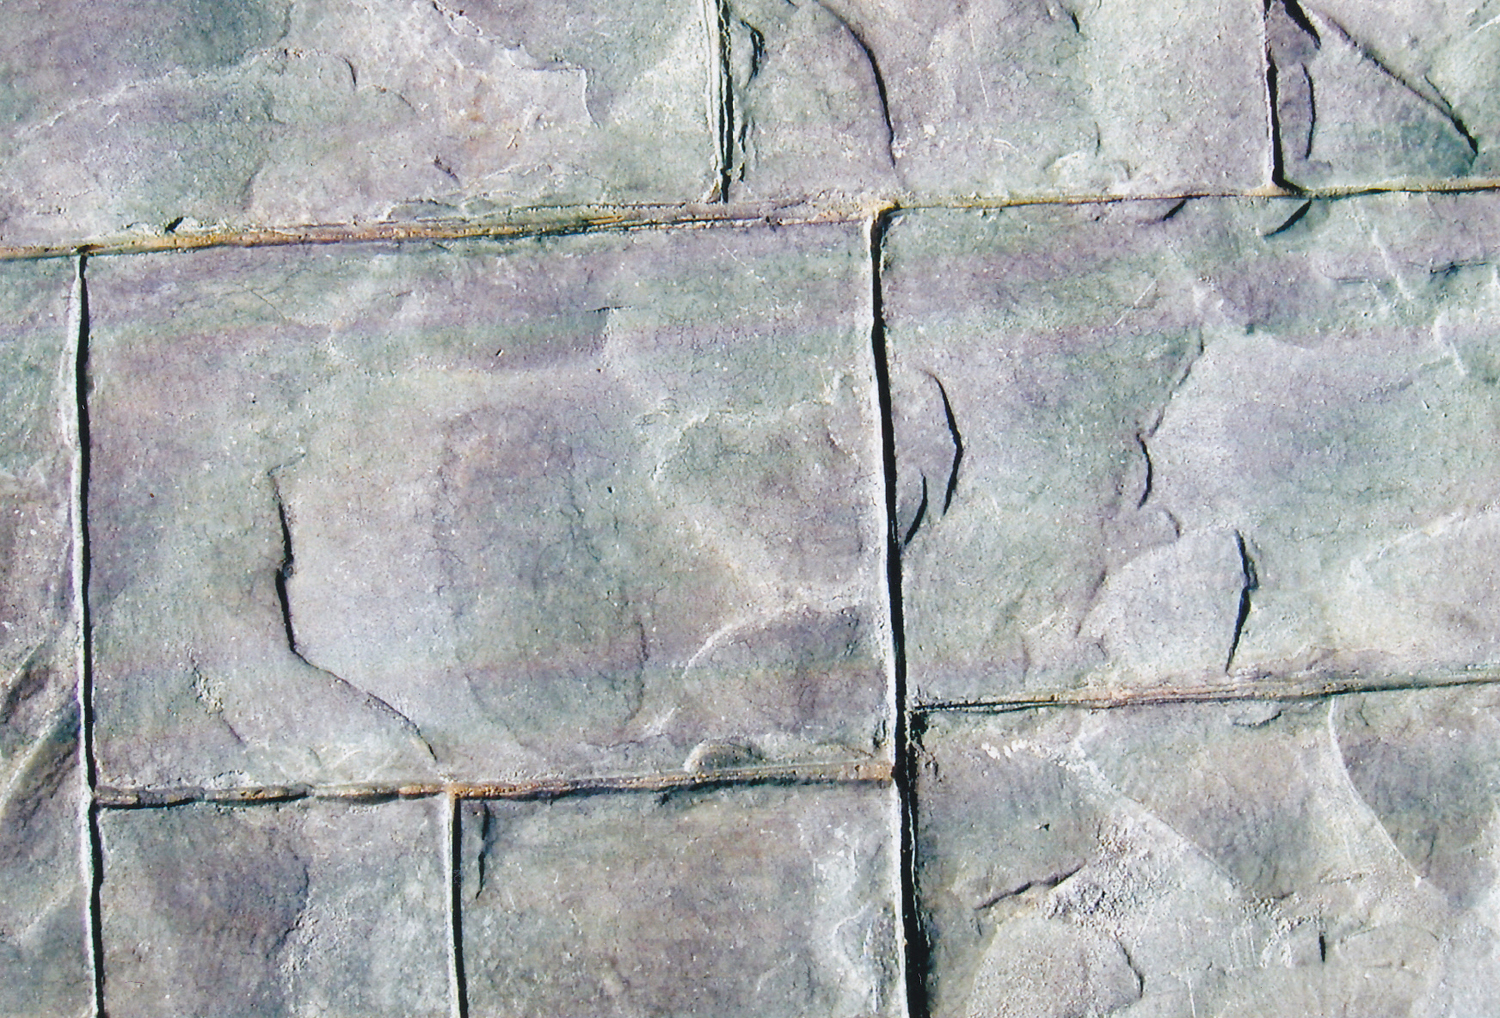 ashler slate 1 of 2_0001.jpg